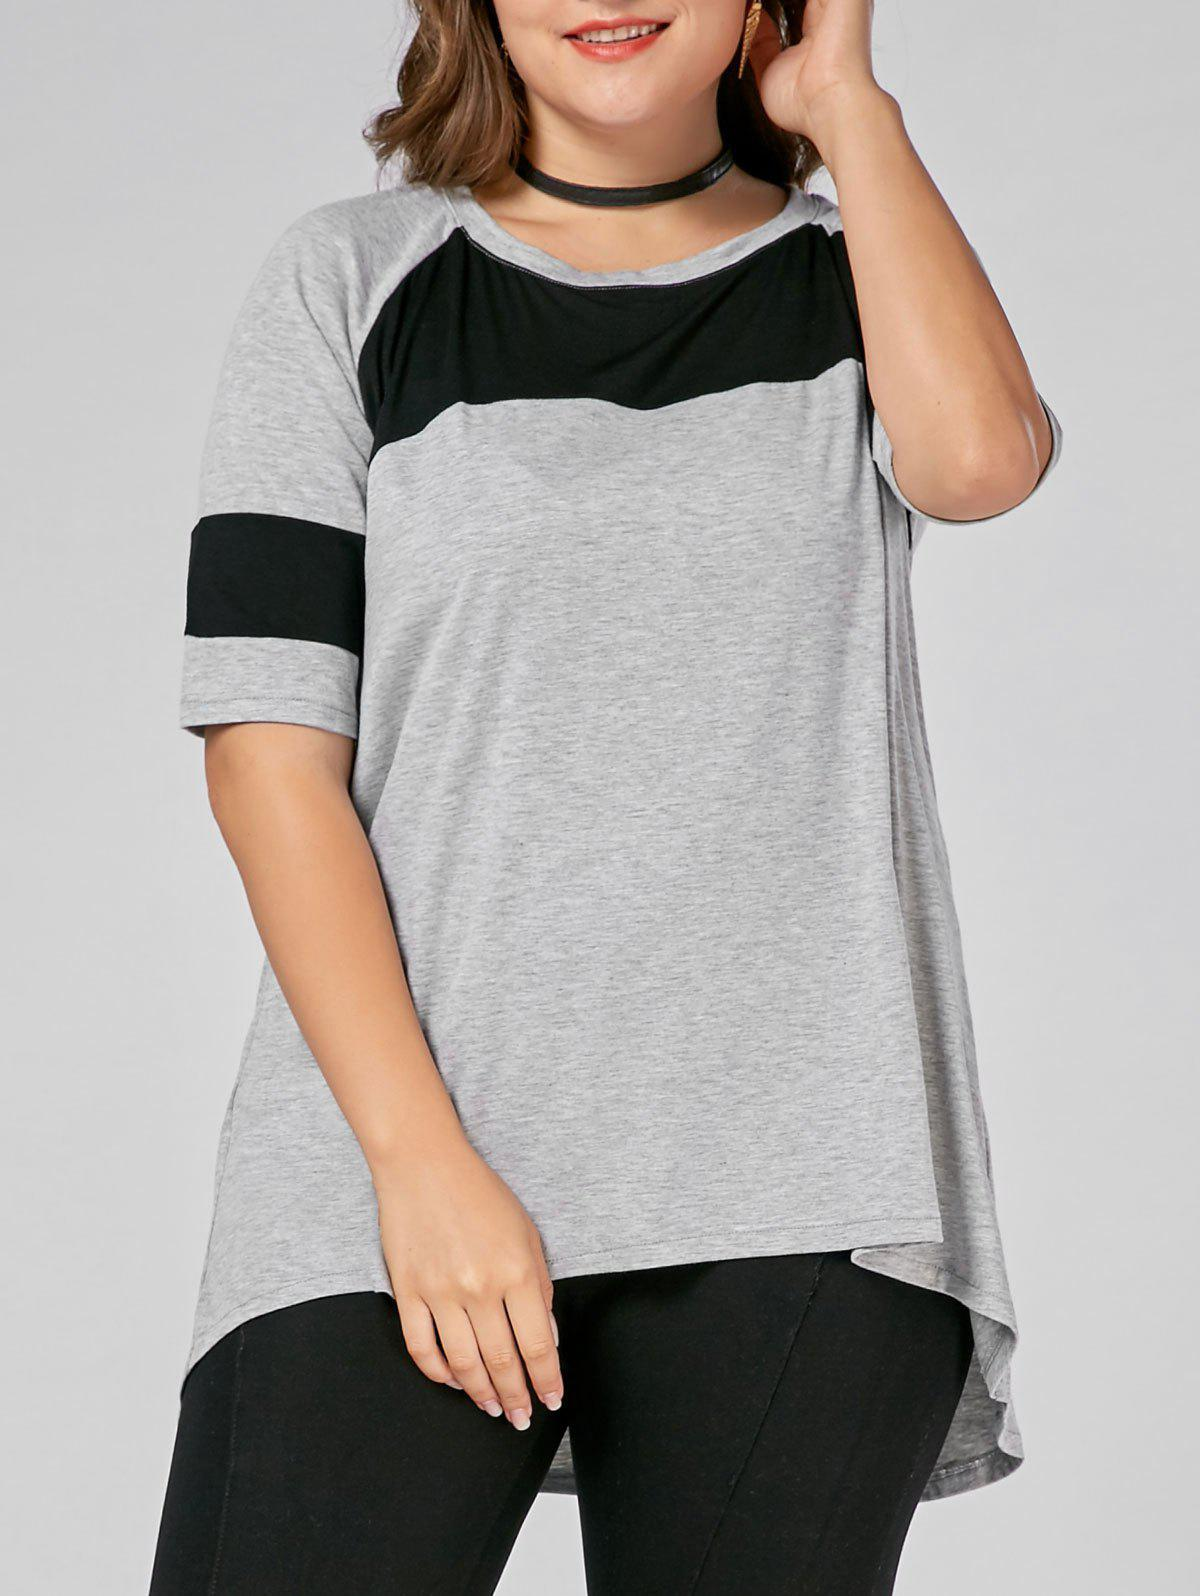 Color Block Plus Size Long High Low T-shirtWOMEN<br><br>Size: 6XL; Color: GRAY; Material: Cotton,Cotton Blends,Polyester; Shirt Length: Long; Sleeve Length: Short; Collar: Scoop Neck; Style: Casual; Season: Spring,Summer; Pattern Type: Others; Weight: 0.2700kg; Package Contents: 1 x Tee;